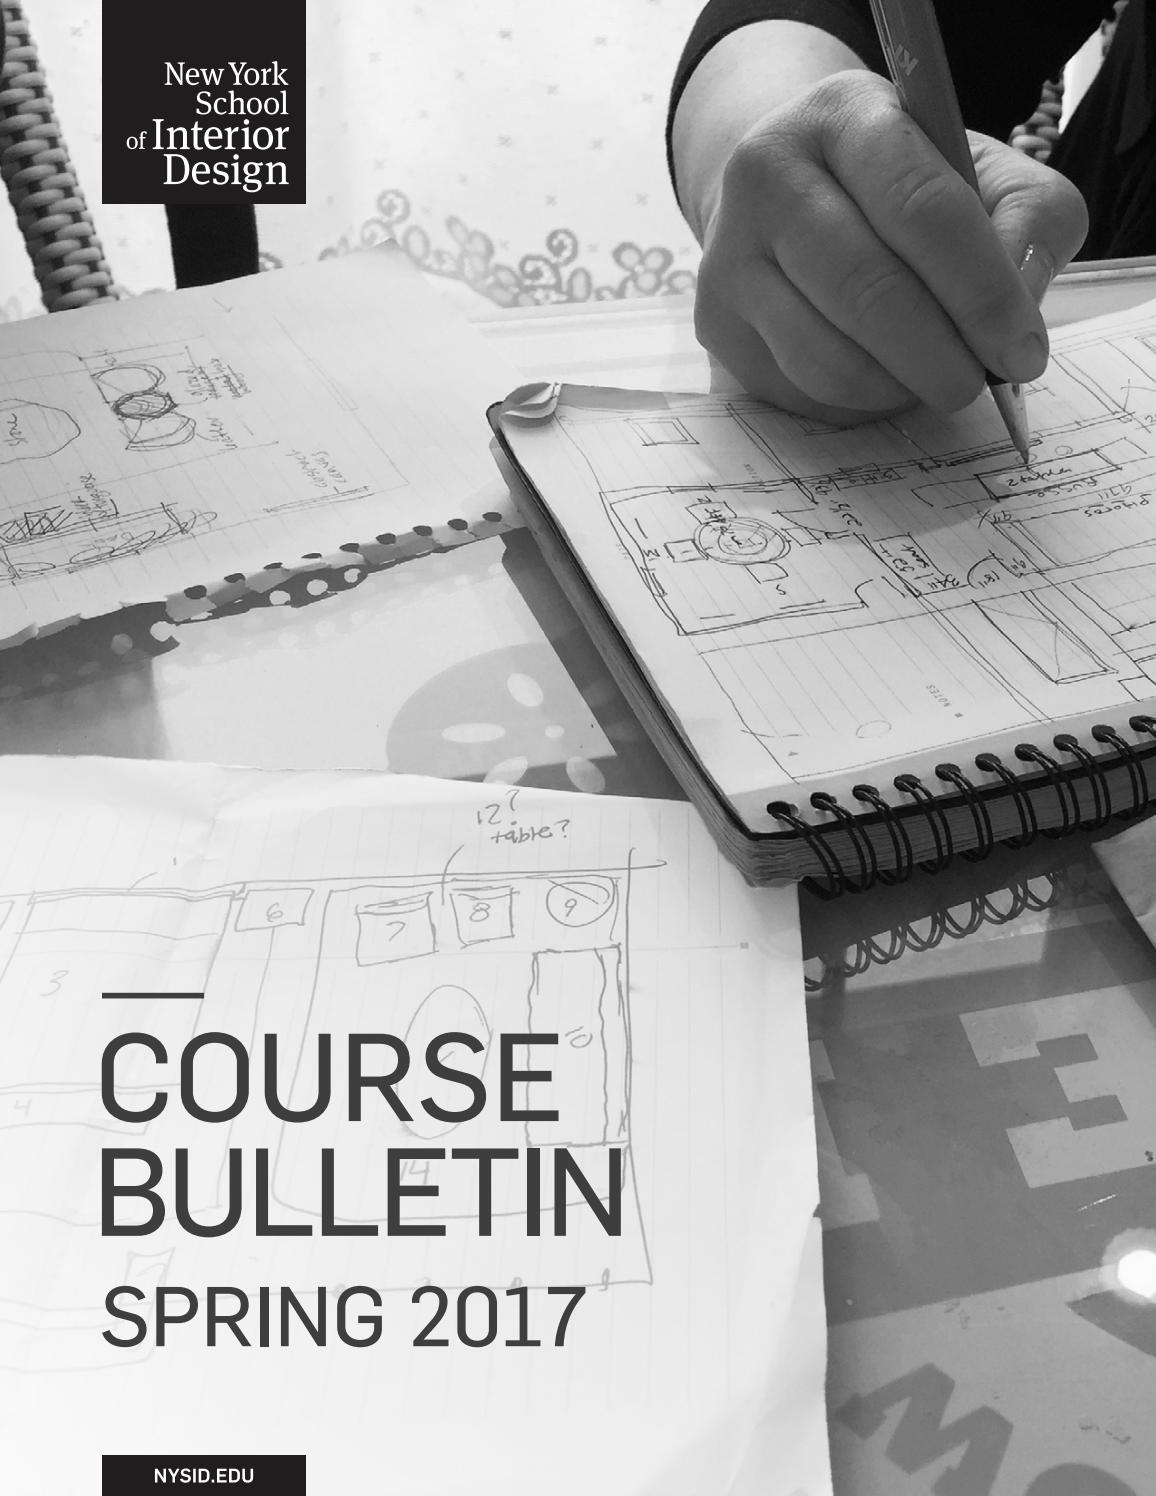 Spring 2017 Course Bulletin By New York School Of Interior Design Issuu